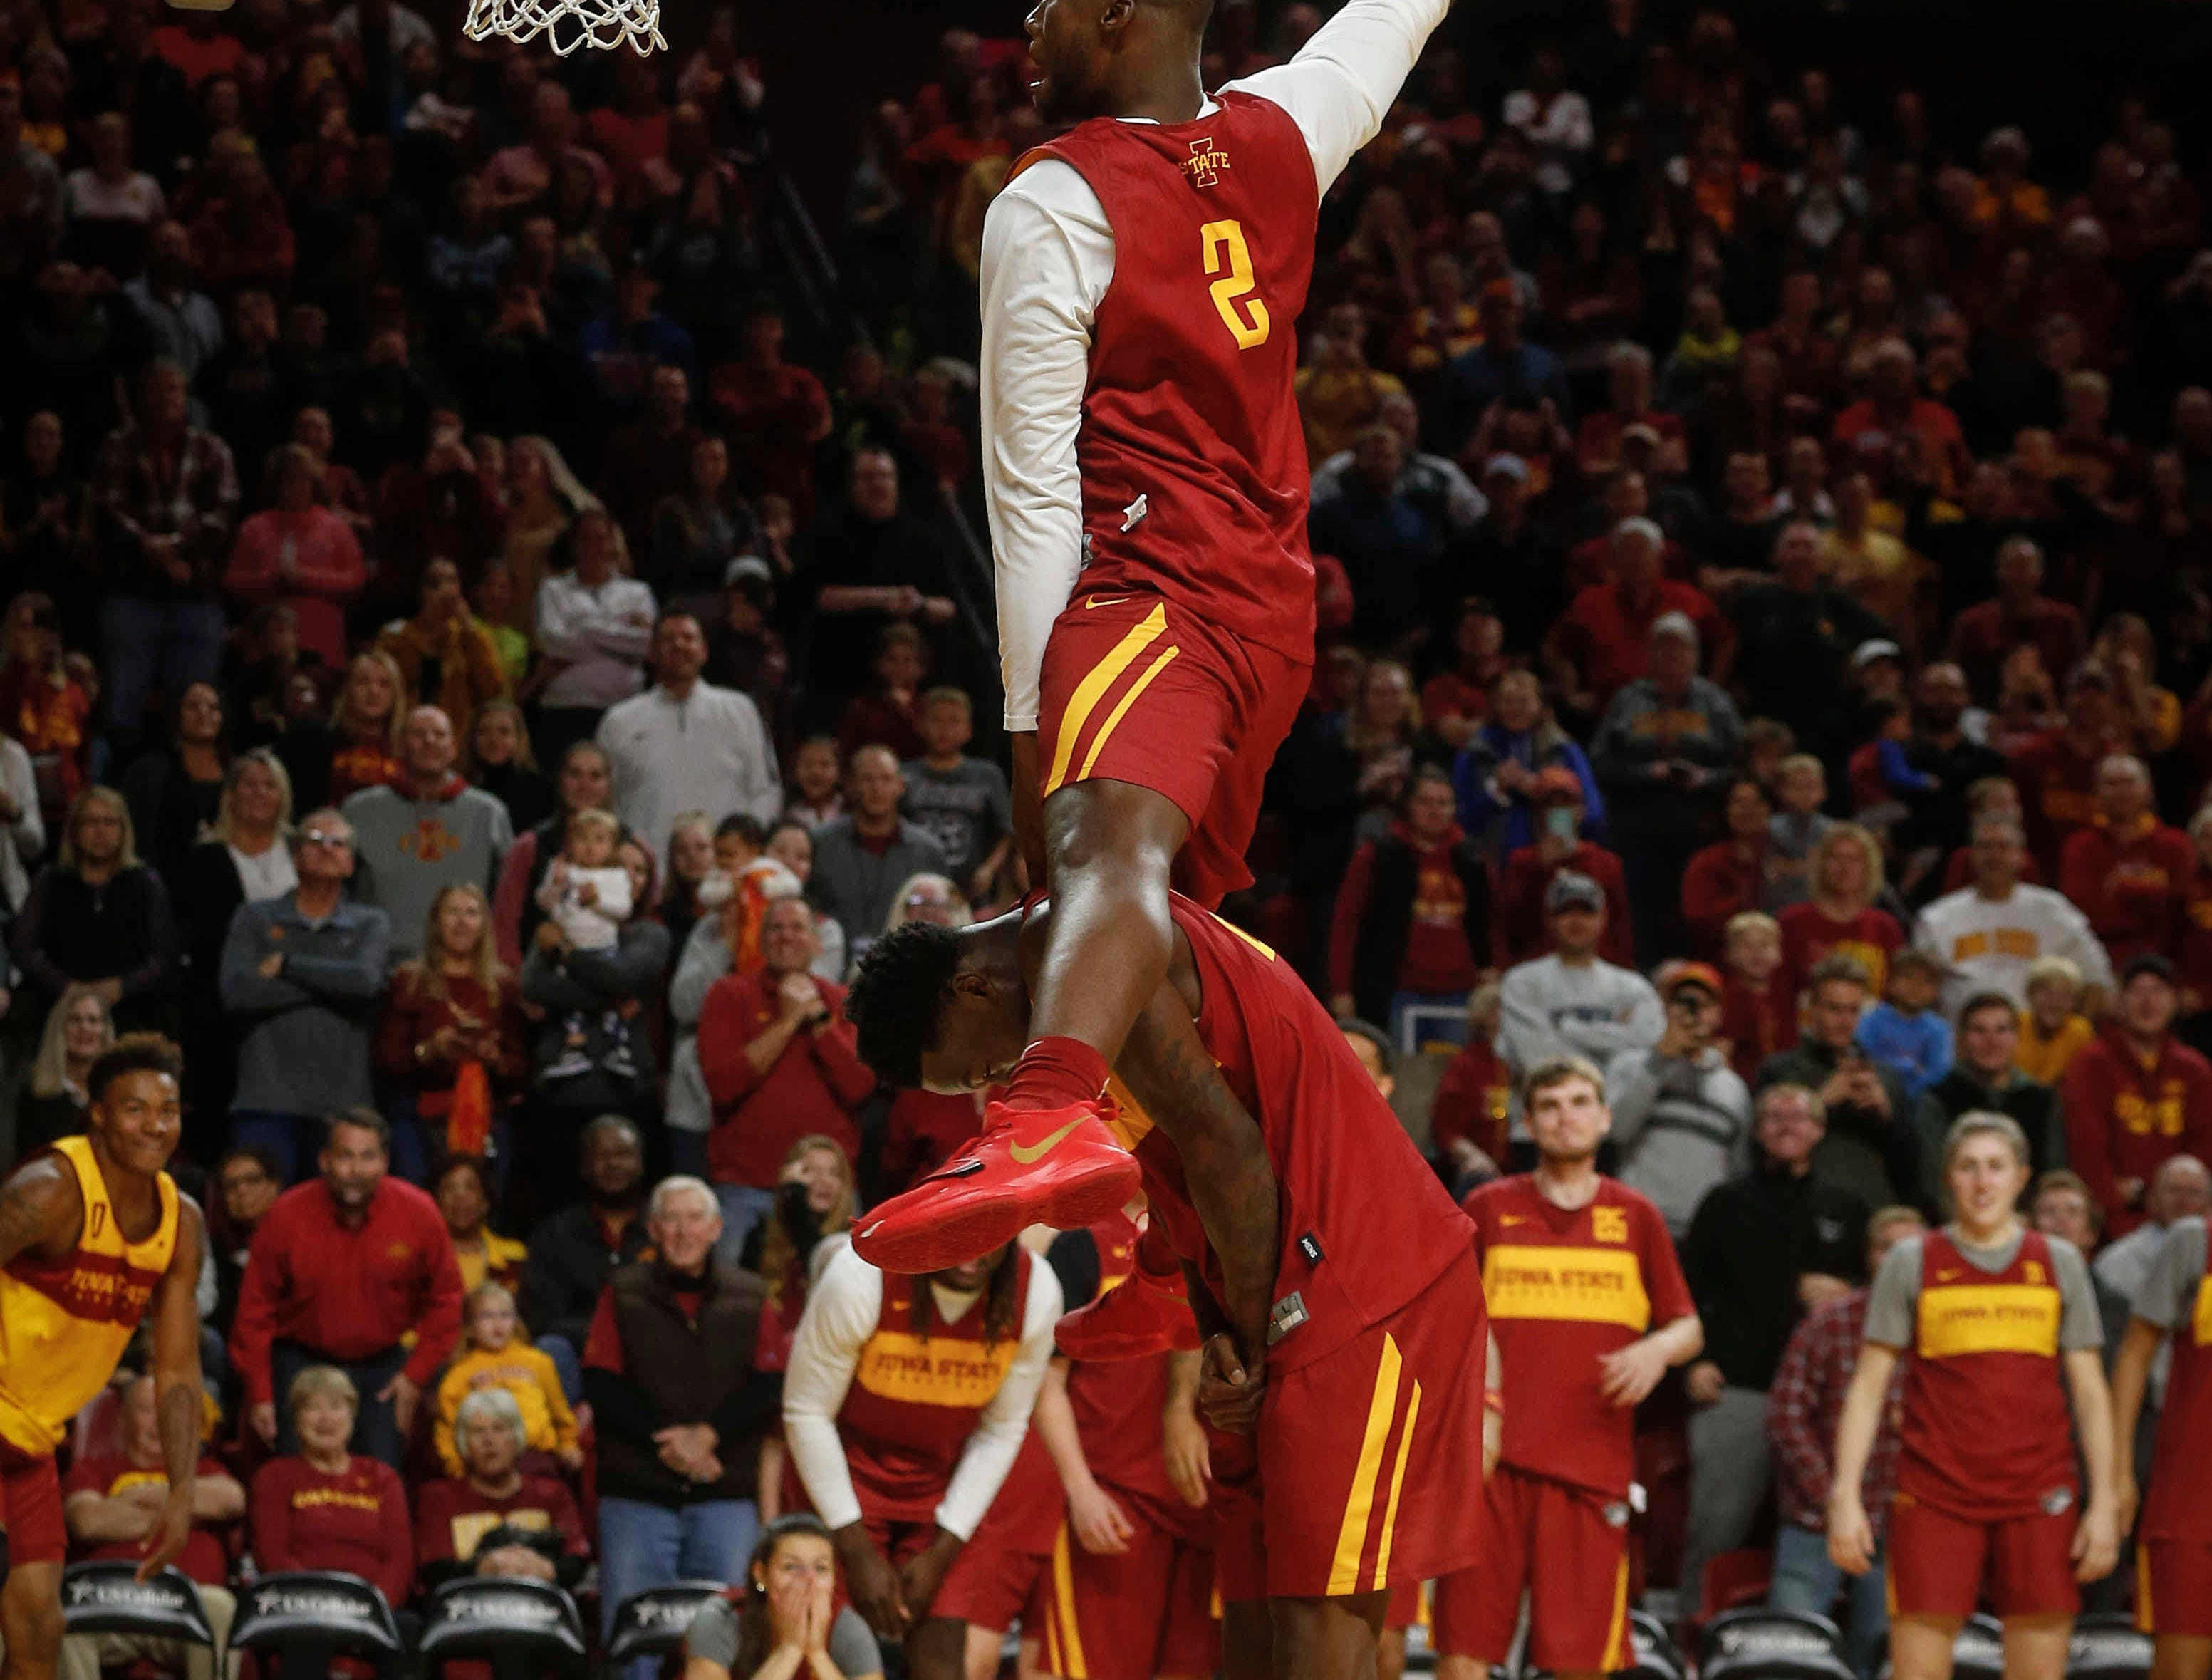 Iowa State's Cameron Lard dunks over a teammate in the slam dunk competition during Hilton Madness at Hilton Coliseum in Ames on Friday, Oct. 12, 2018.